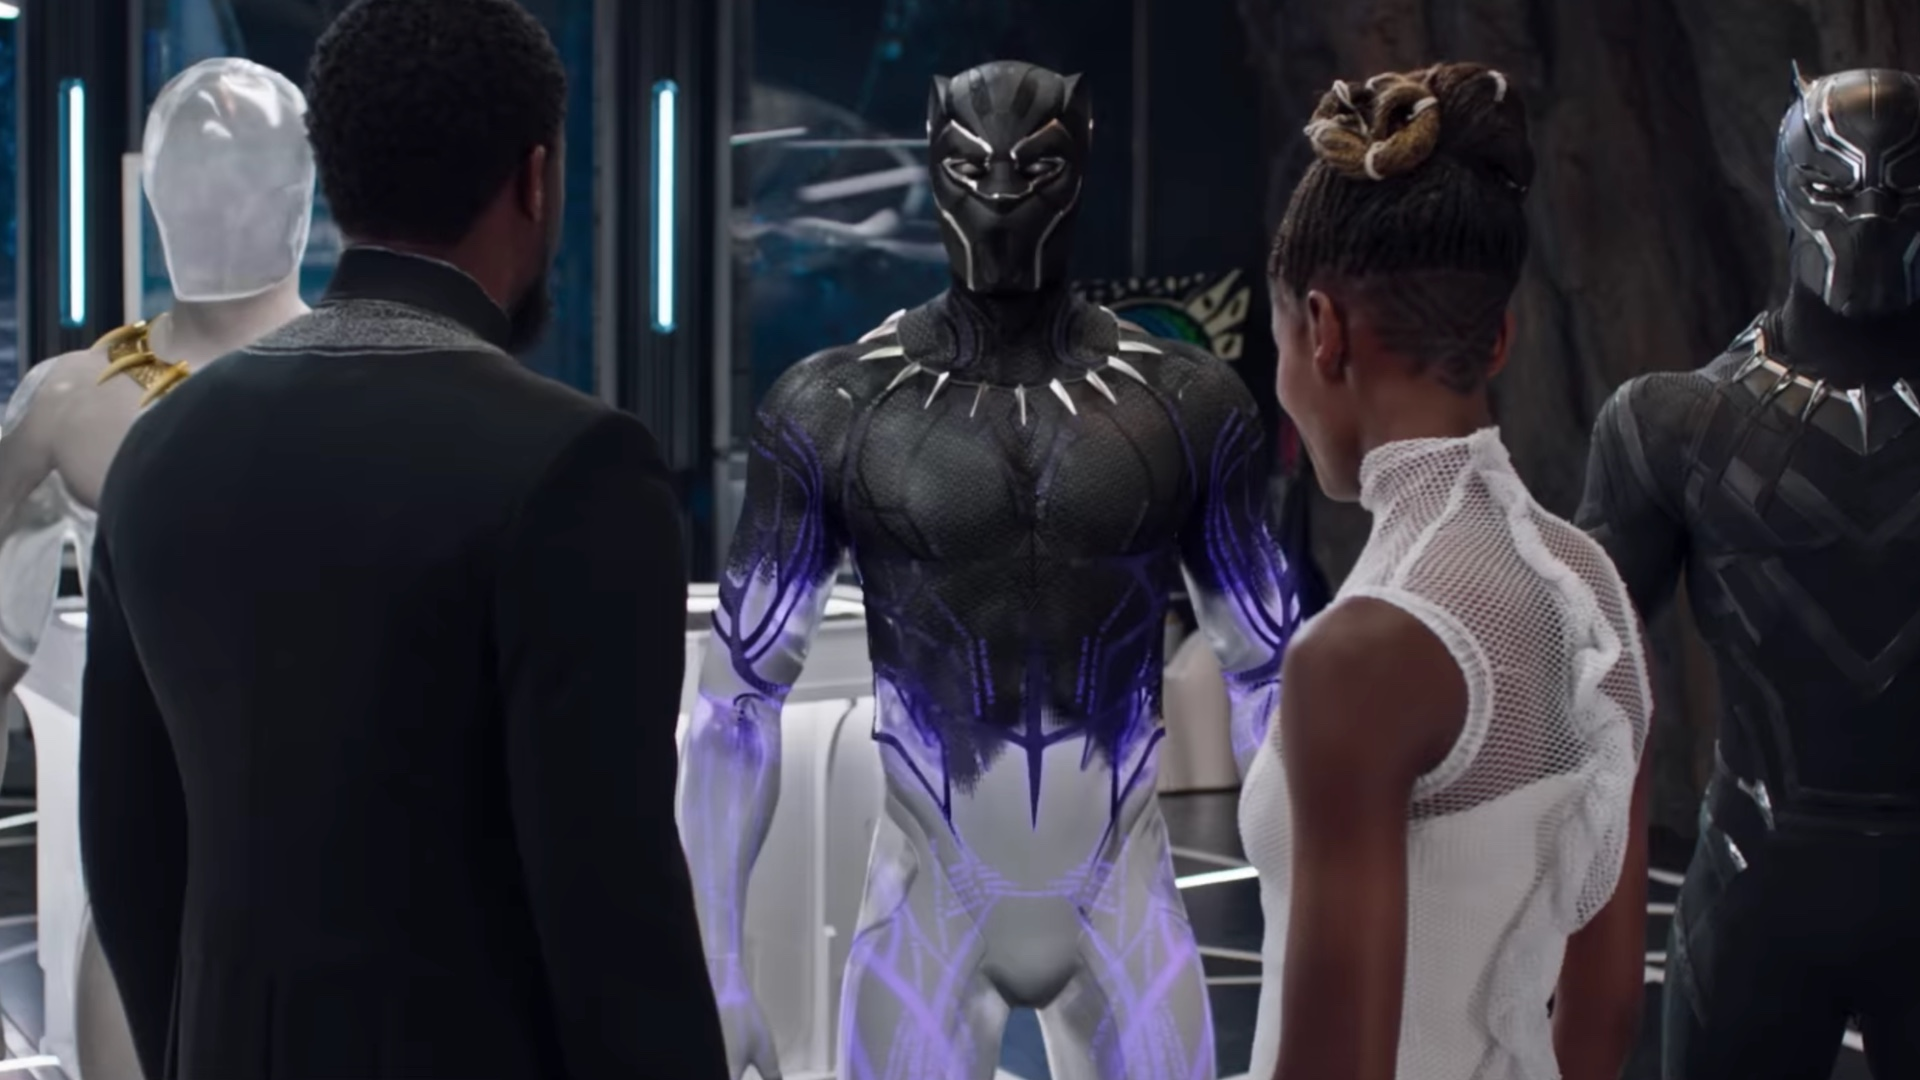 black-panther-gets-a-cool-new-tv-spot-and-a-featurette-focusing-on-the-suits-capabilities-social.jpg